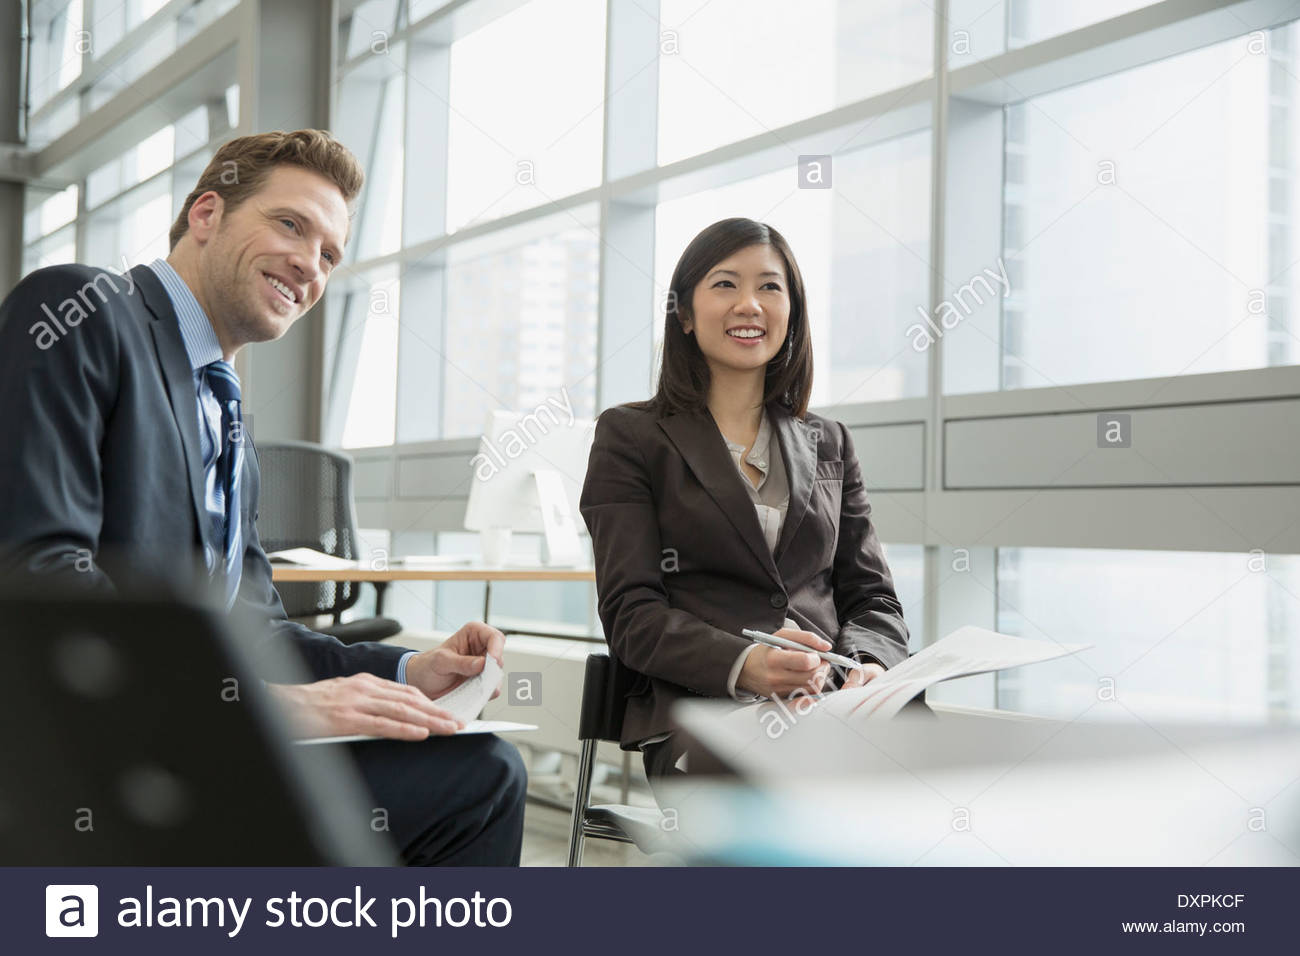 Confident business people in meeting - Stock Image